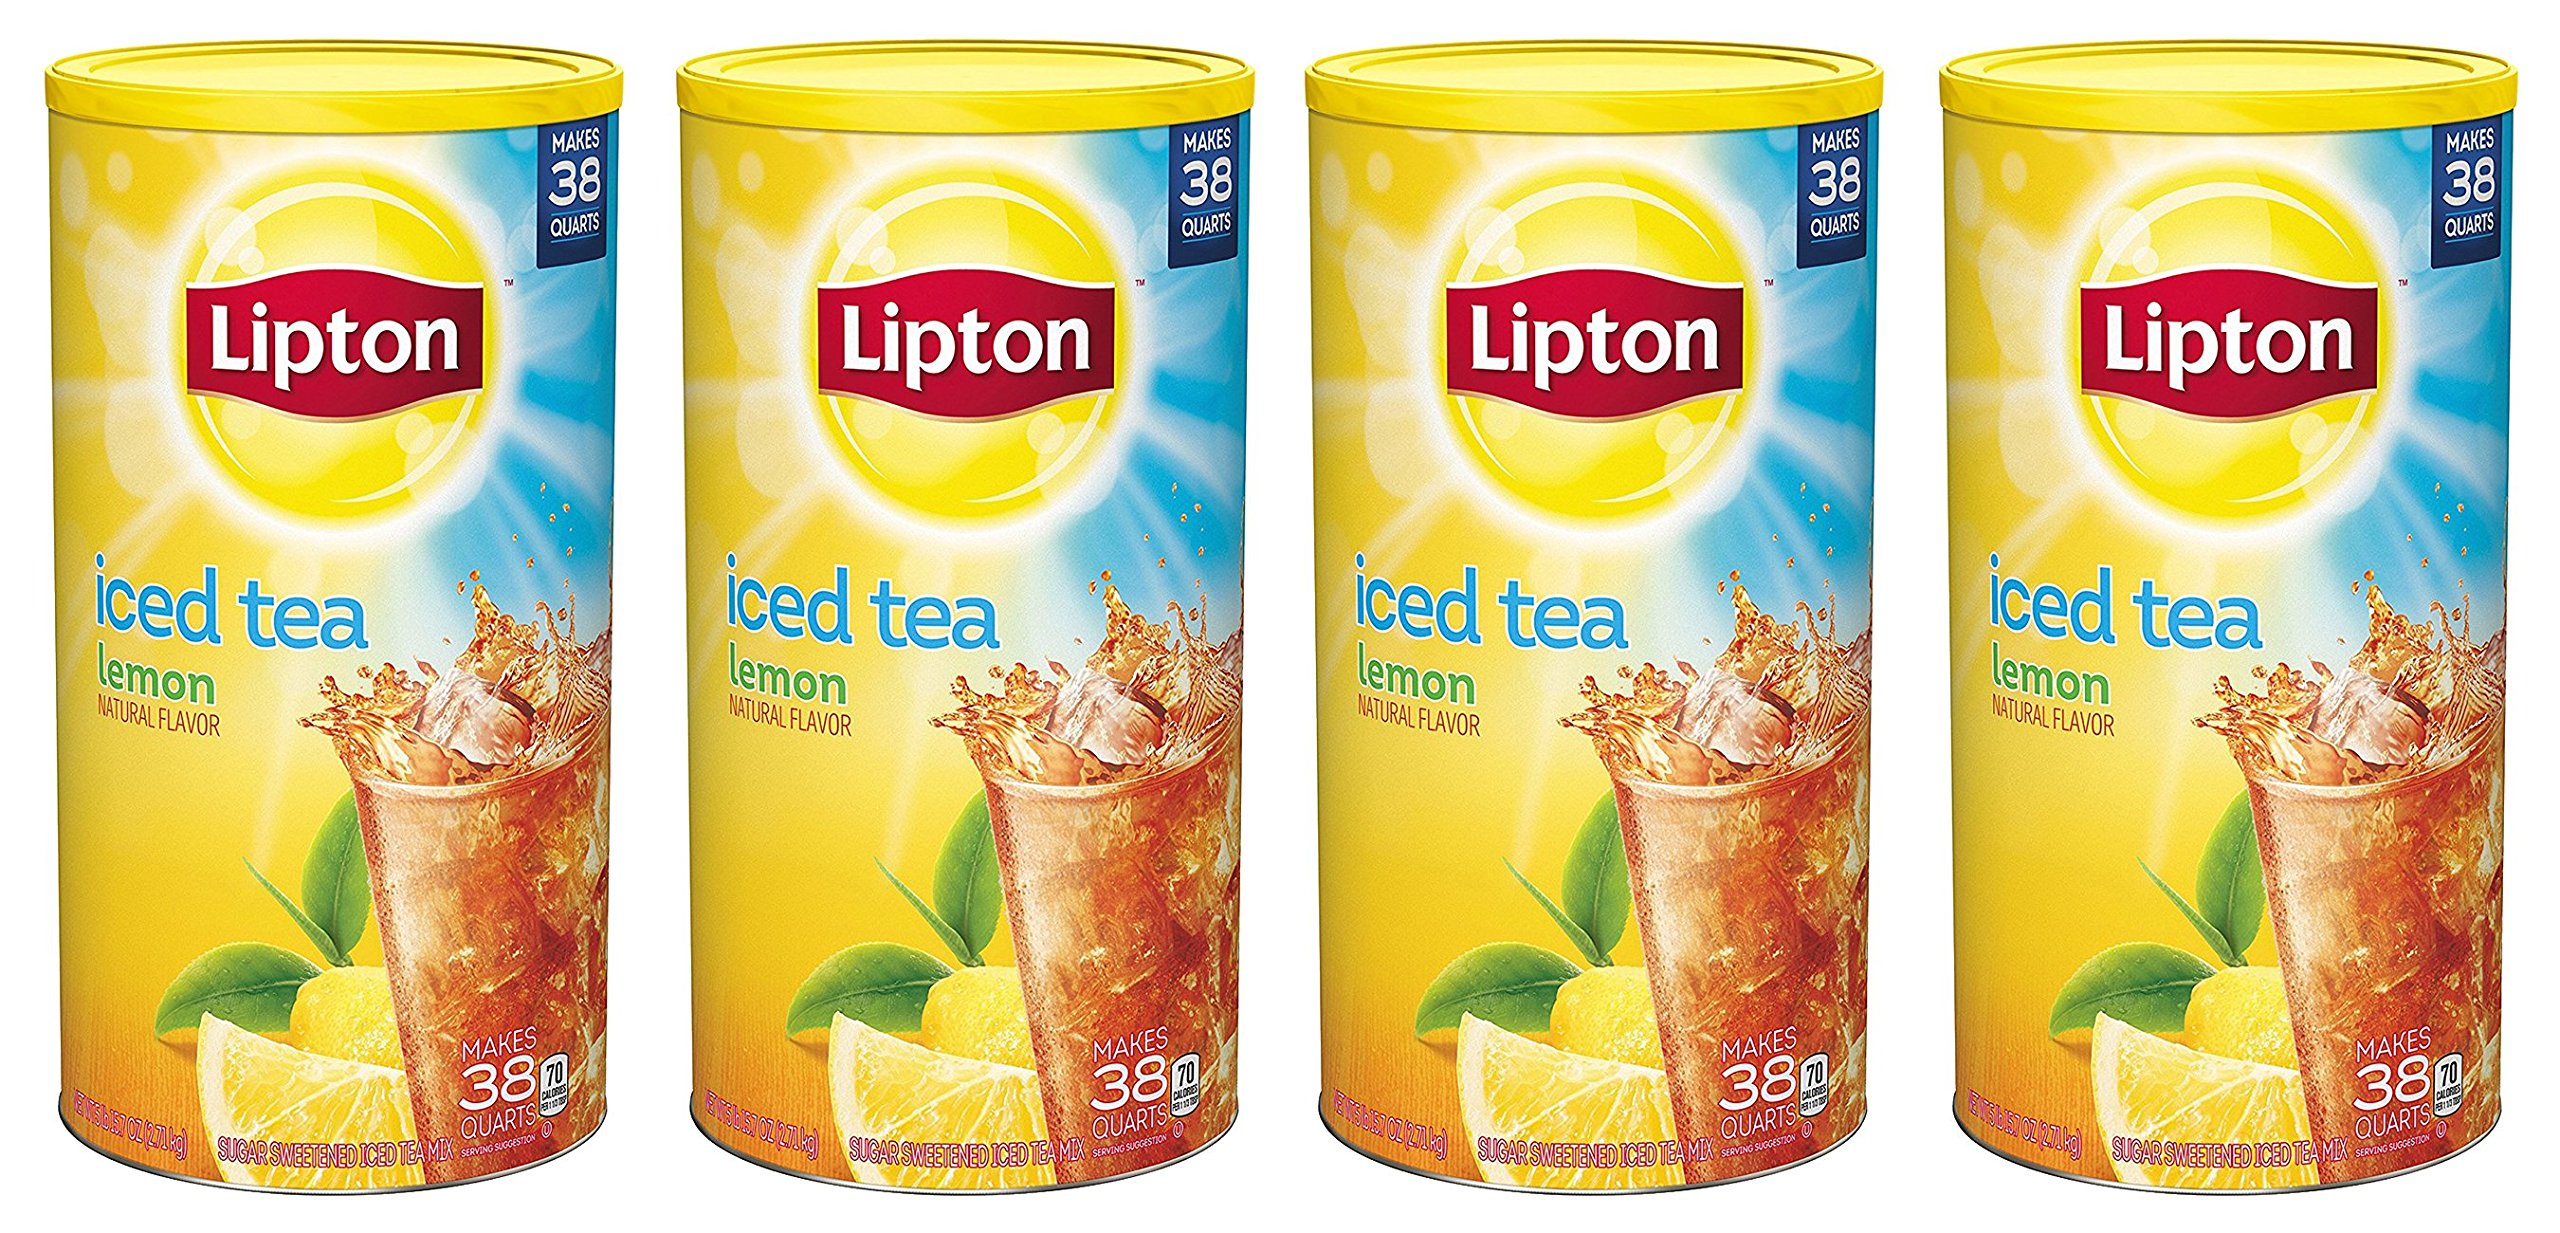 Lipton Iced Tea Mix, Lemon 38 qt - Pack of 4